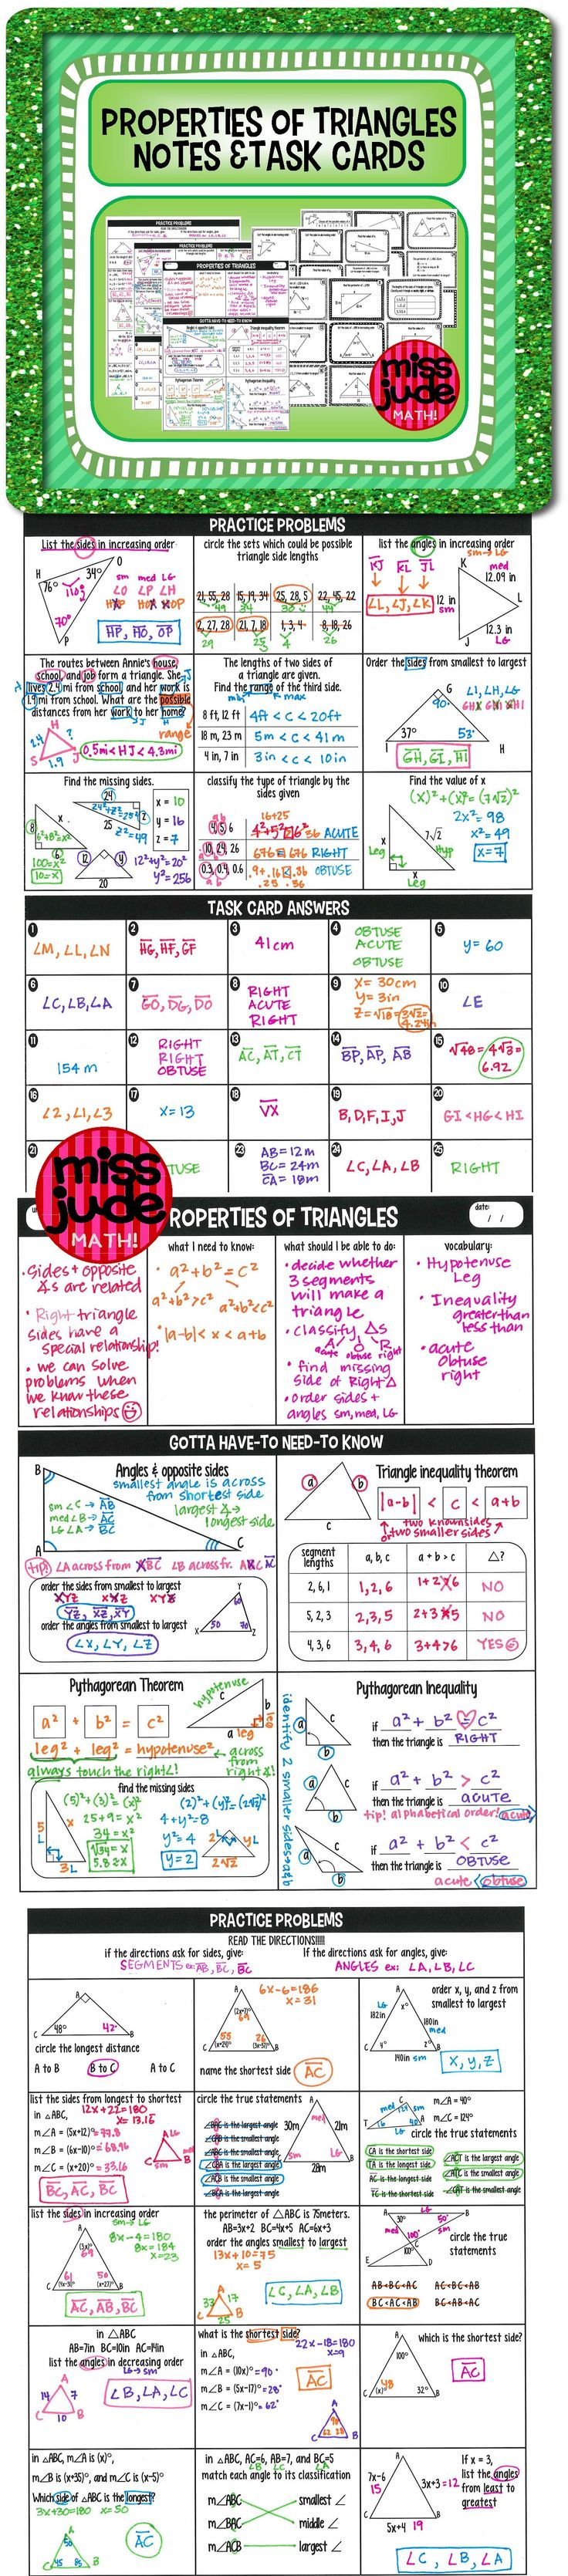 notes, practice, and 25 task cards for your high school geometry class Introduces relationship between sides and angles, triangle inequality, pythagorean theorem and pythagorean inequality.  Happy solving! from the miss jude math TPT shop